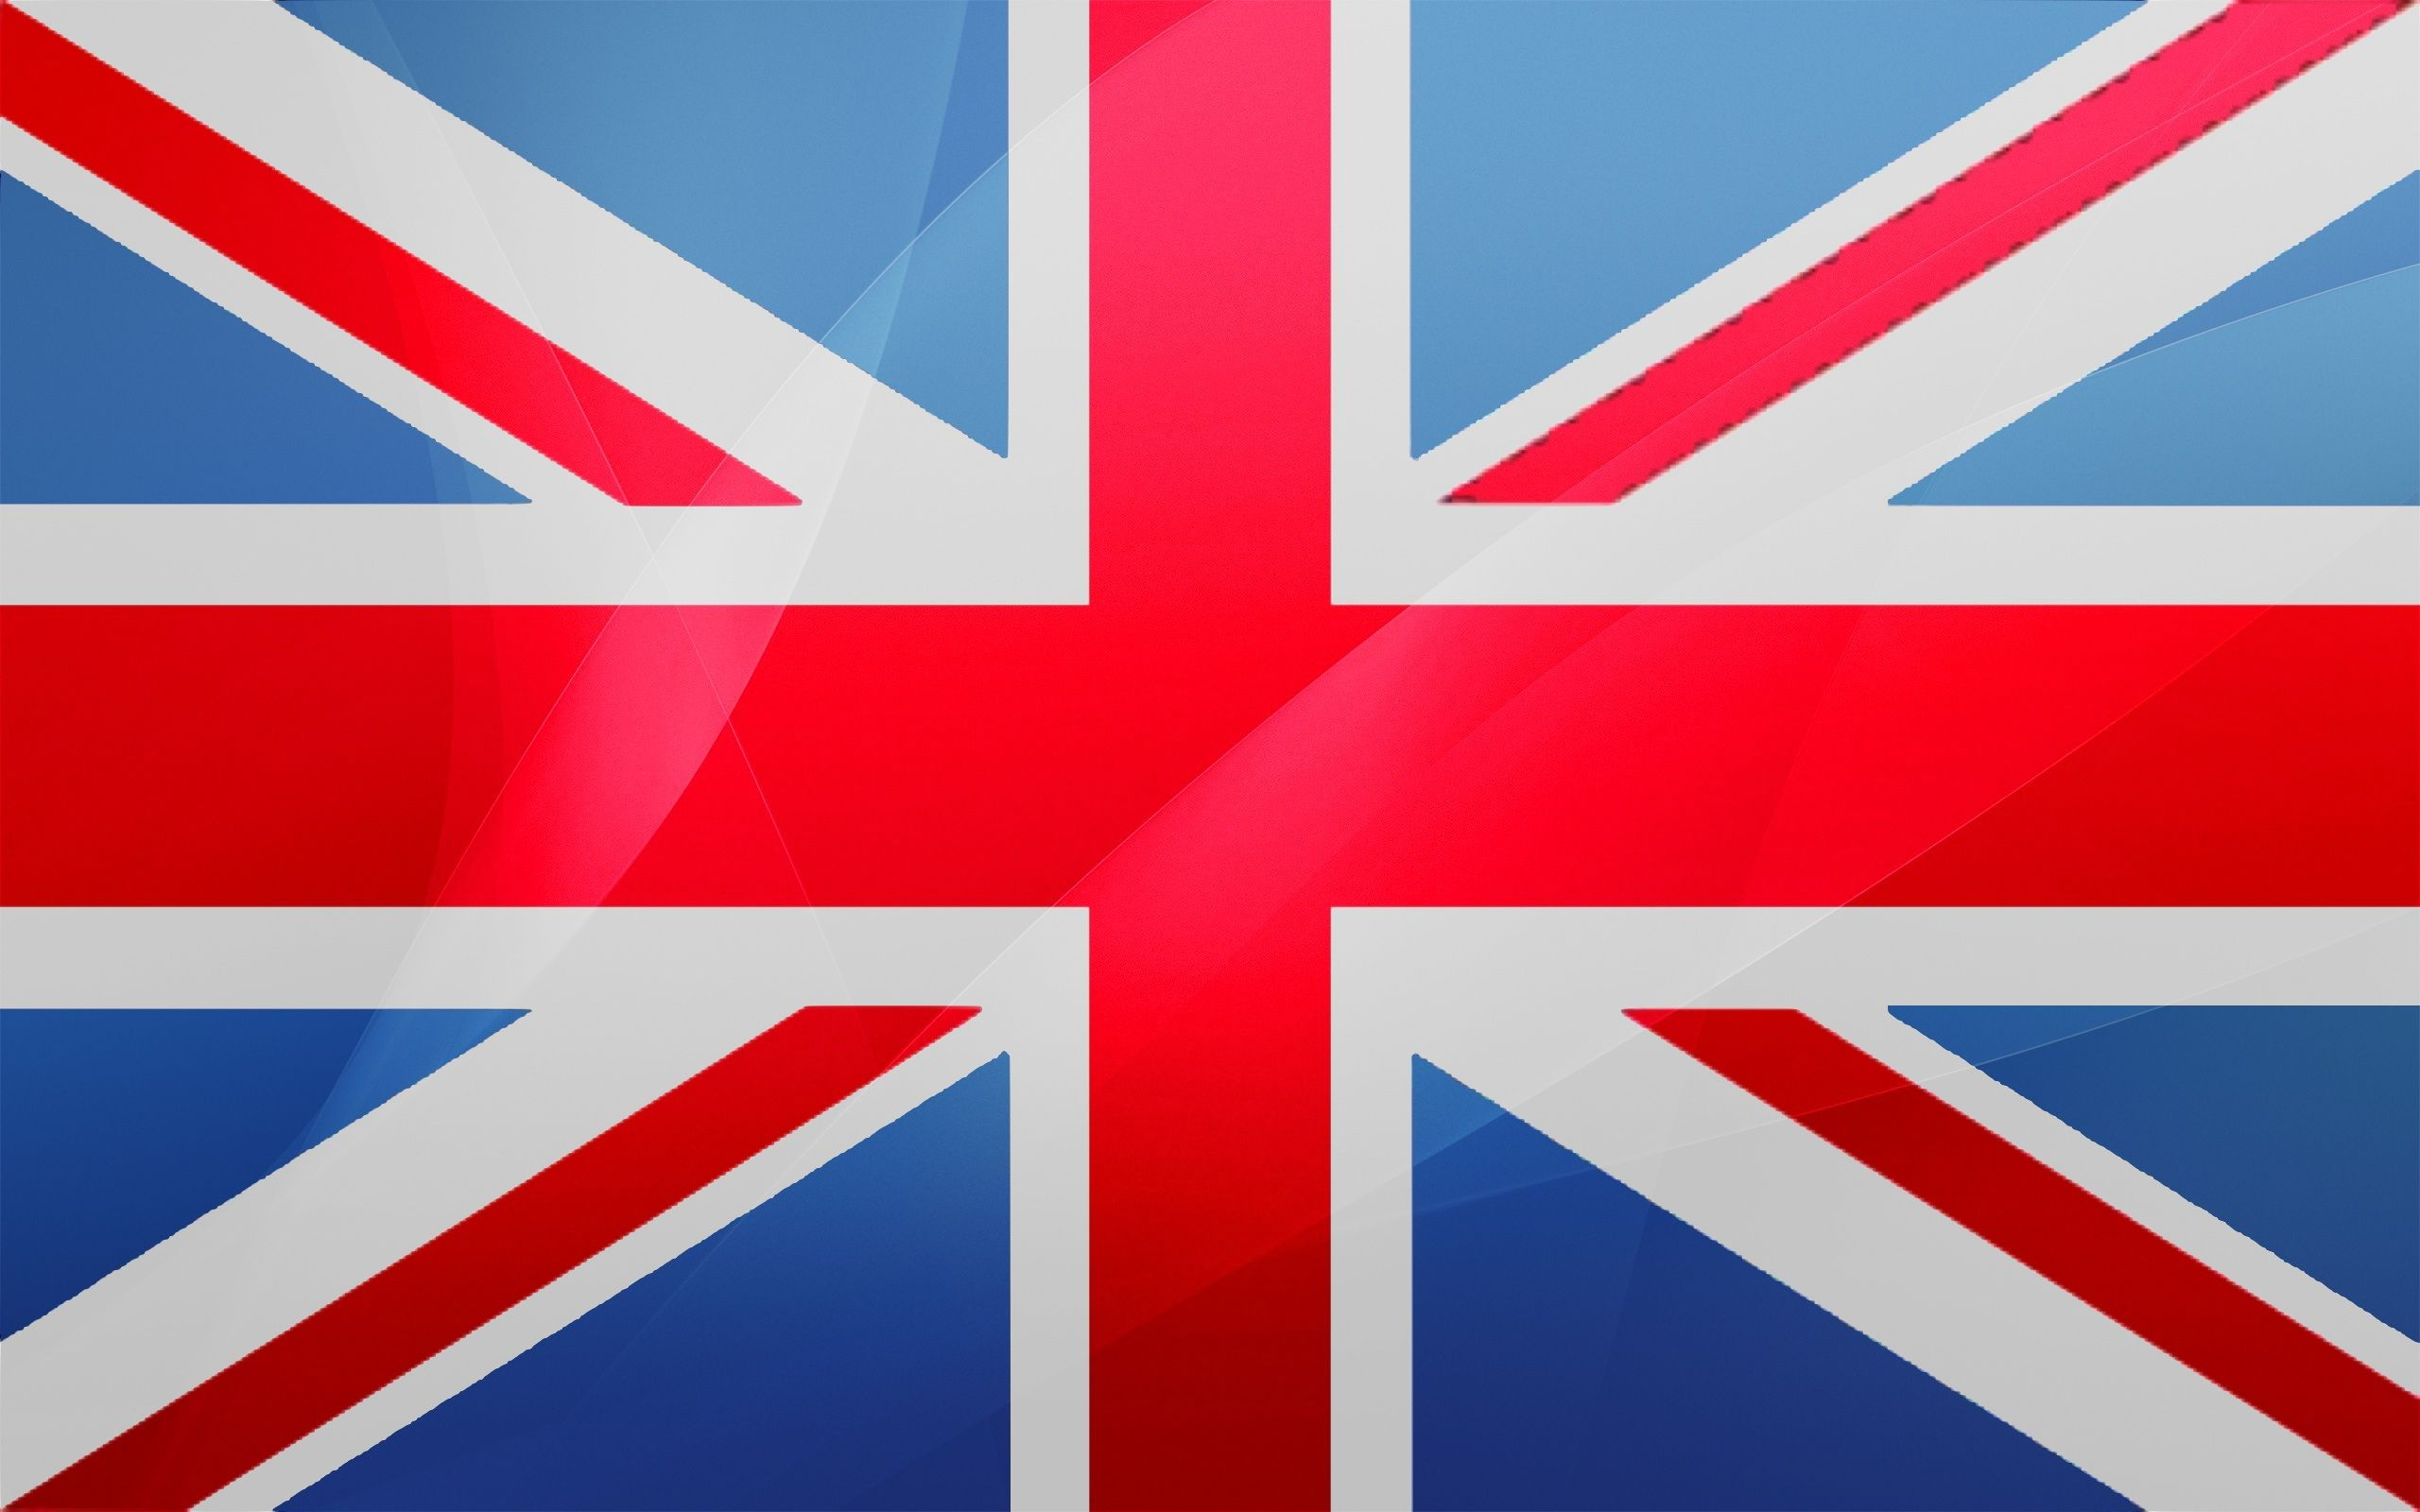 Union Jack Wallpaper Wall Mural - Muralswallpapercouk - Design Services,